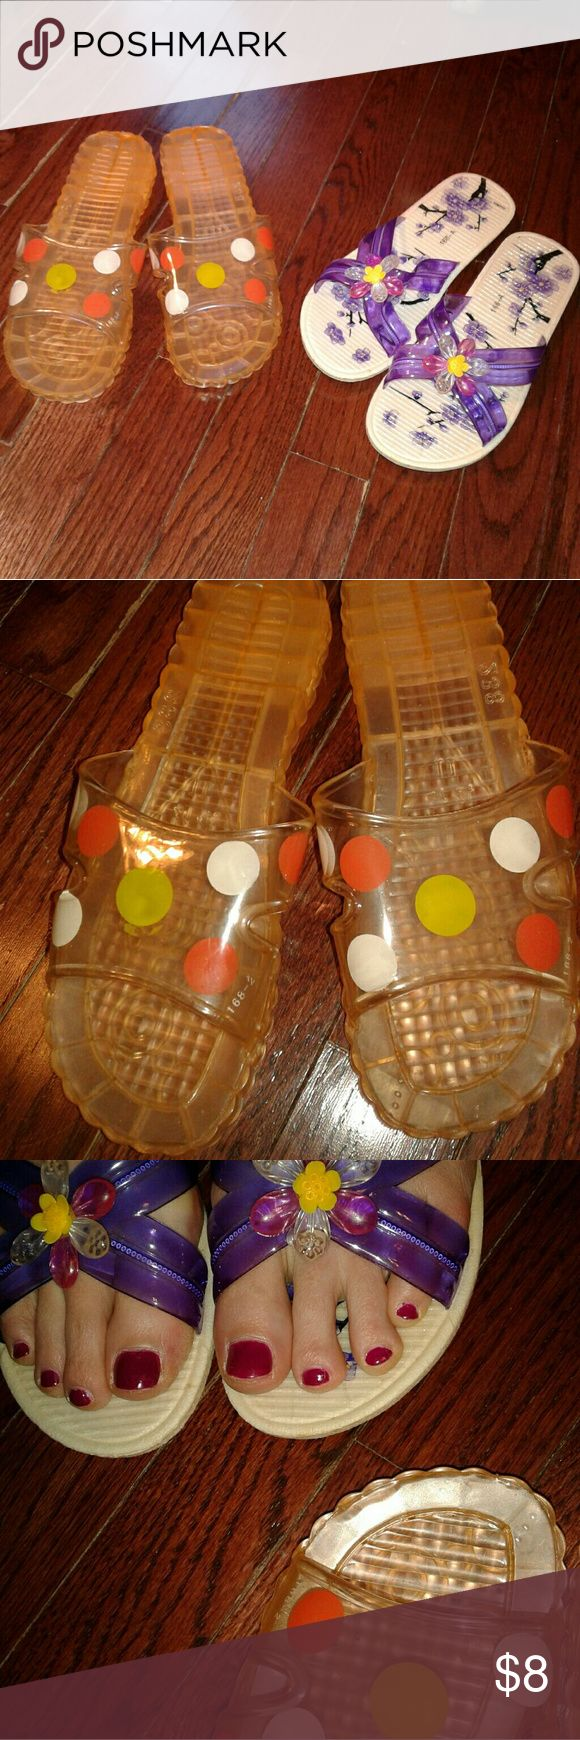 Girls/Womans Jelly Shoes Bundle of 2 pairs of adult size 6.5 jelly shoes  GUC Shoes